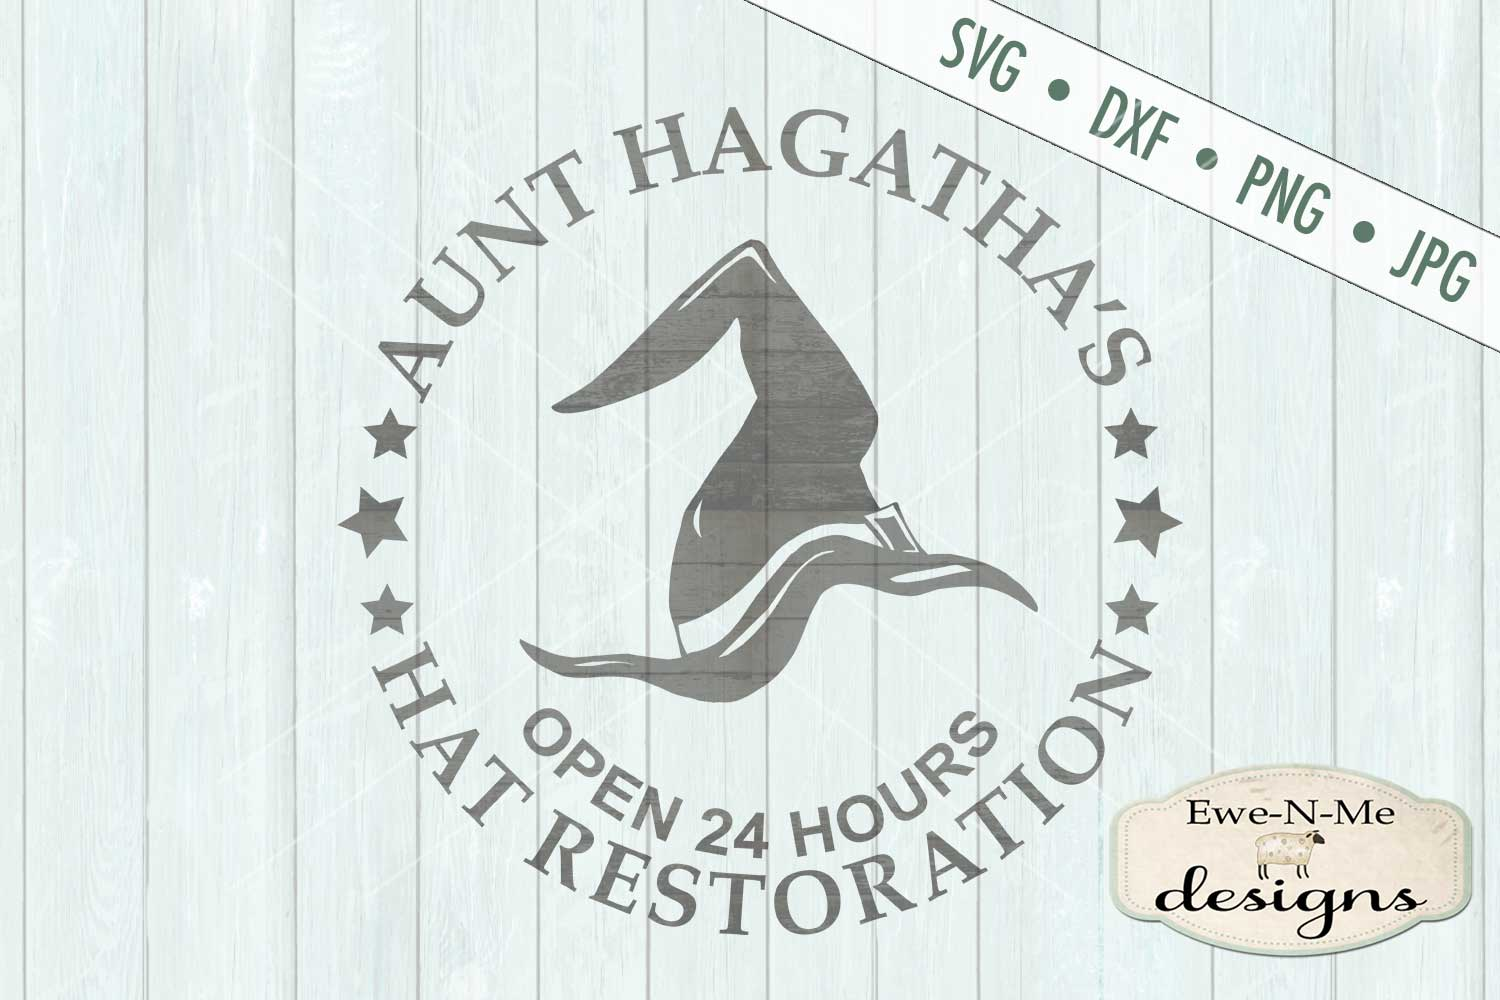 Witch Hat Restoration Aunt Hagatha Halloween SVG DXF Files example image 2